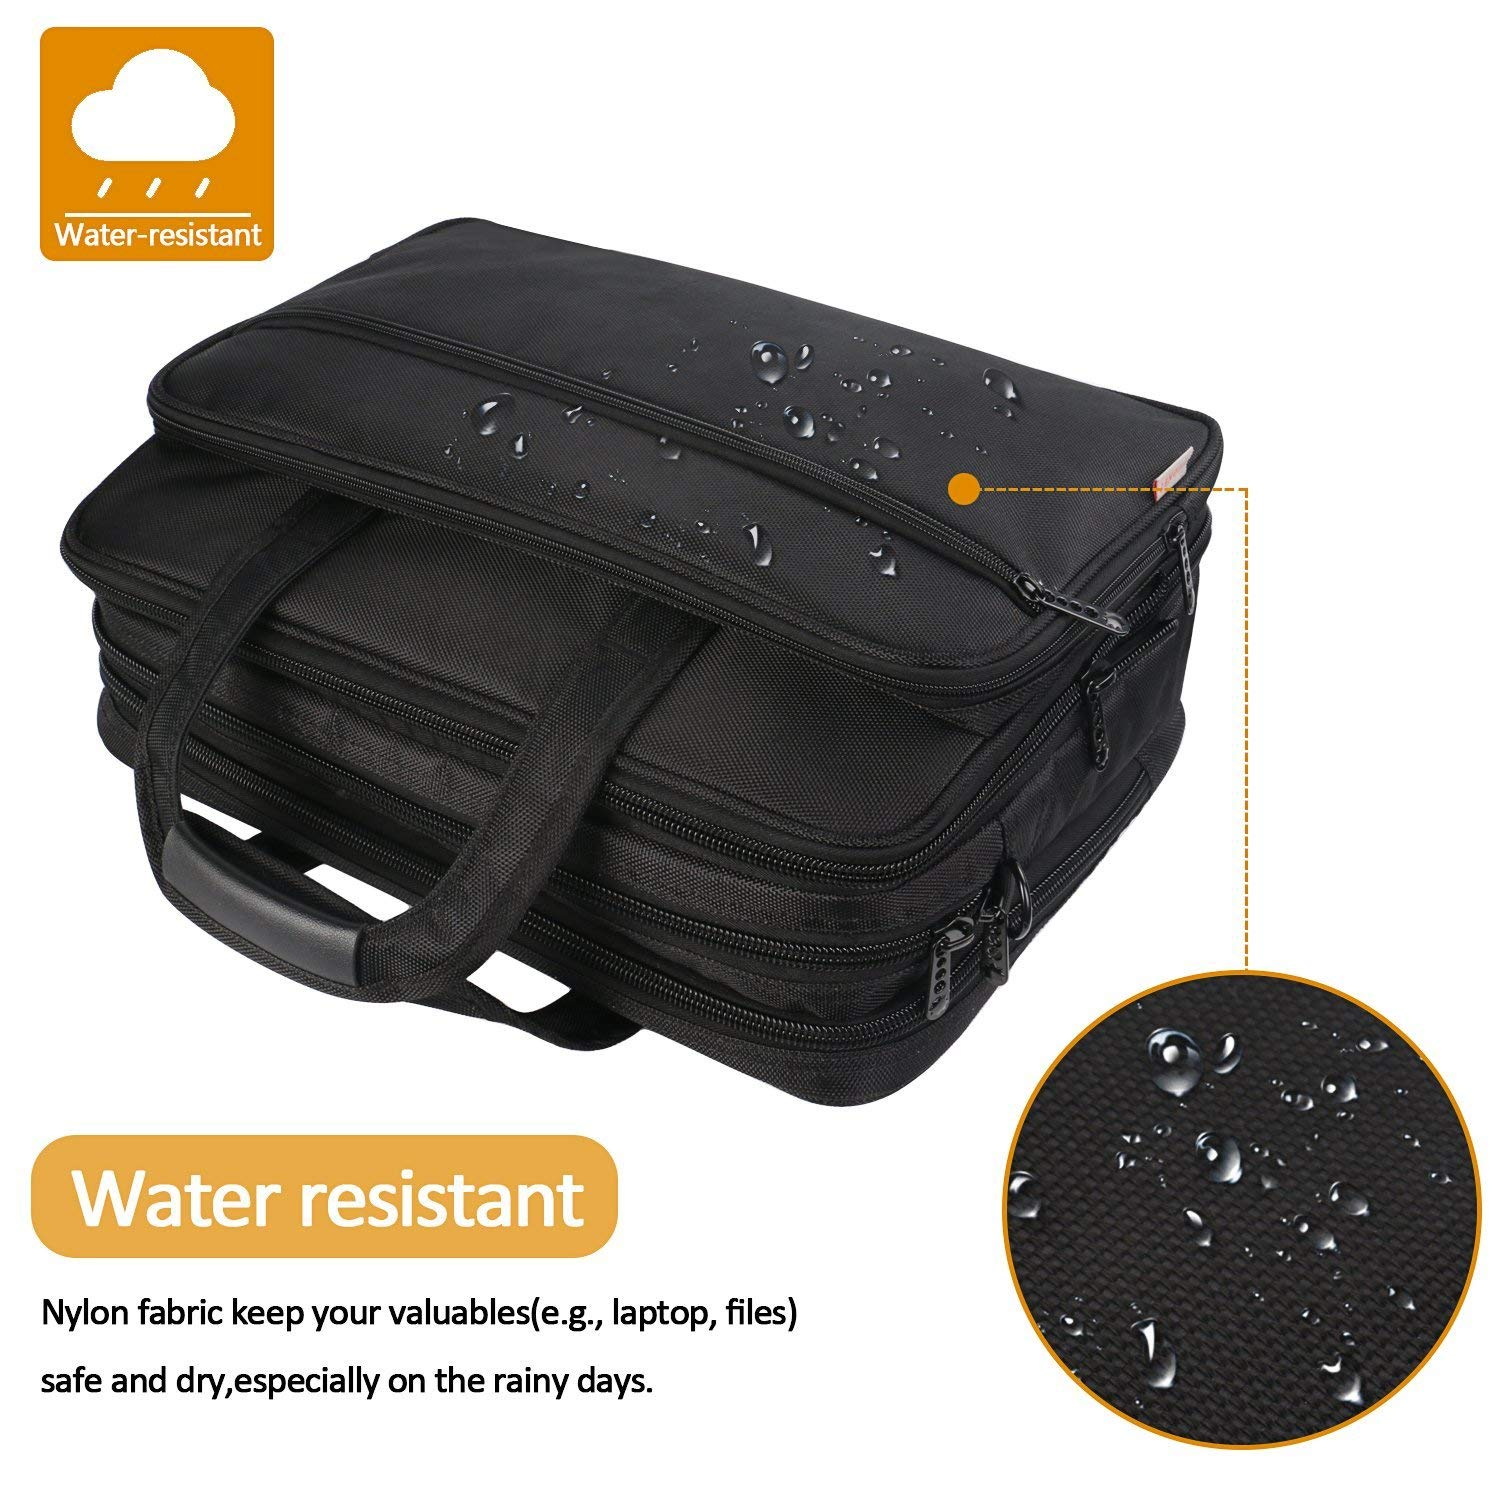 17 inch Laptop Bag, Large Business Briefcase for Men Women, Travel Laptop Case Shoulder Bag, Waterproof Carrying Case Fits 15.6 17 inch Laptop, Expandable Computer Bag for Notebook, Ultrabook by Mancro (Image #5)